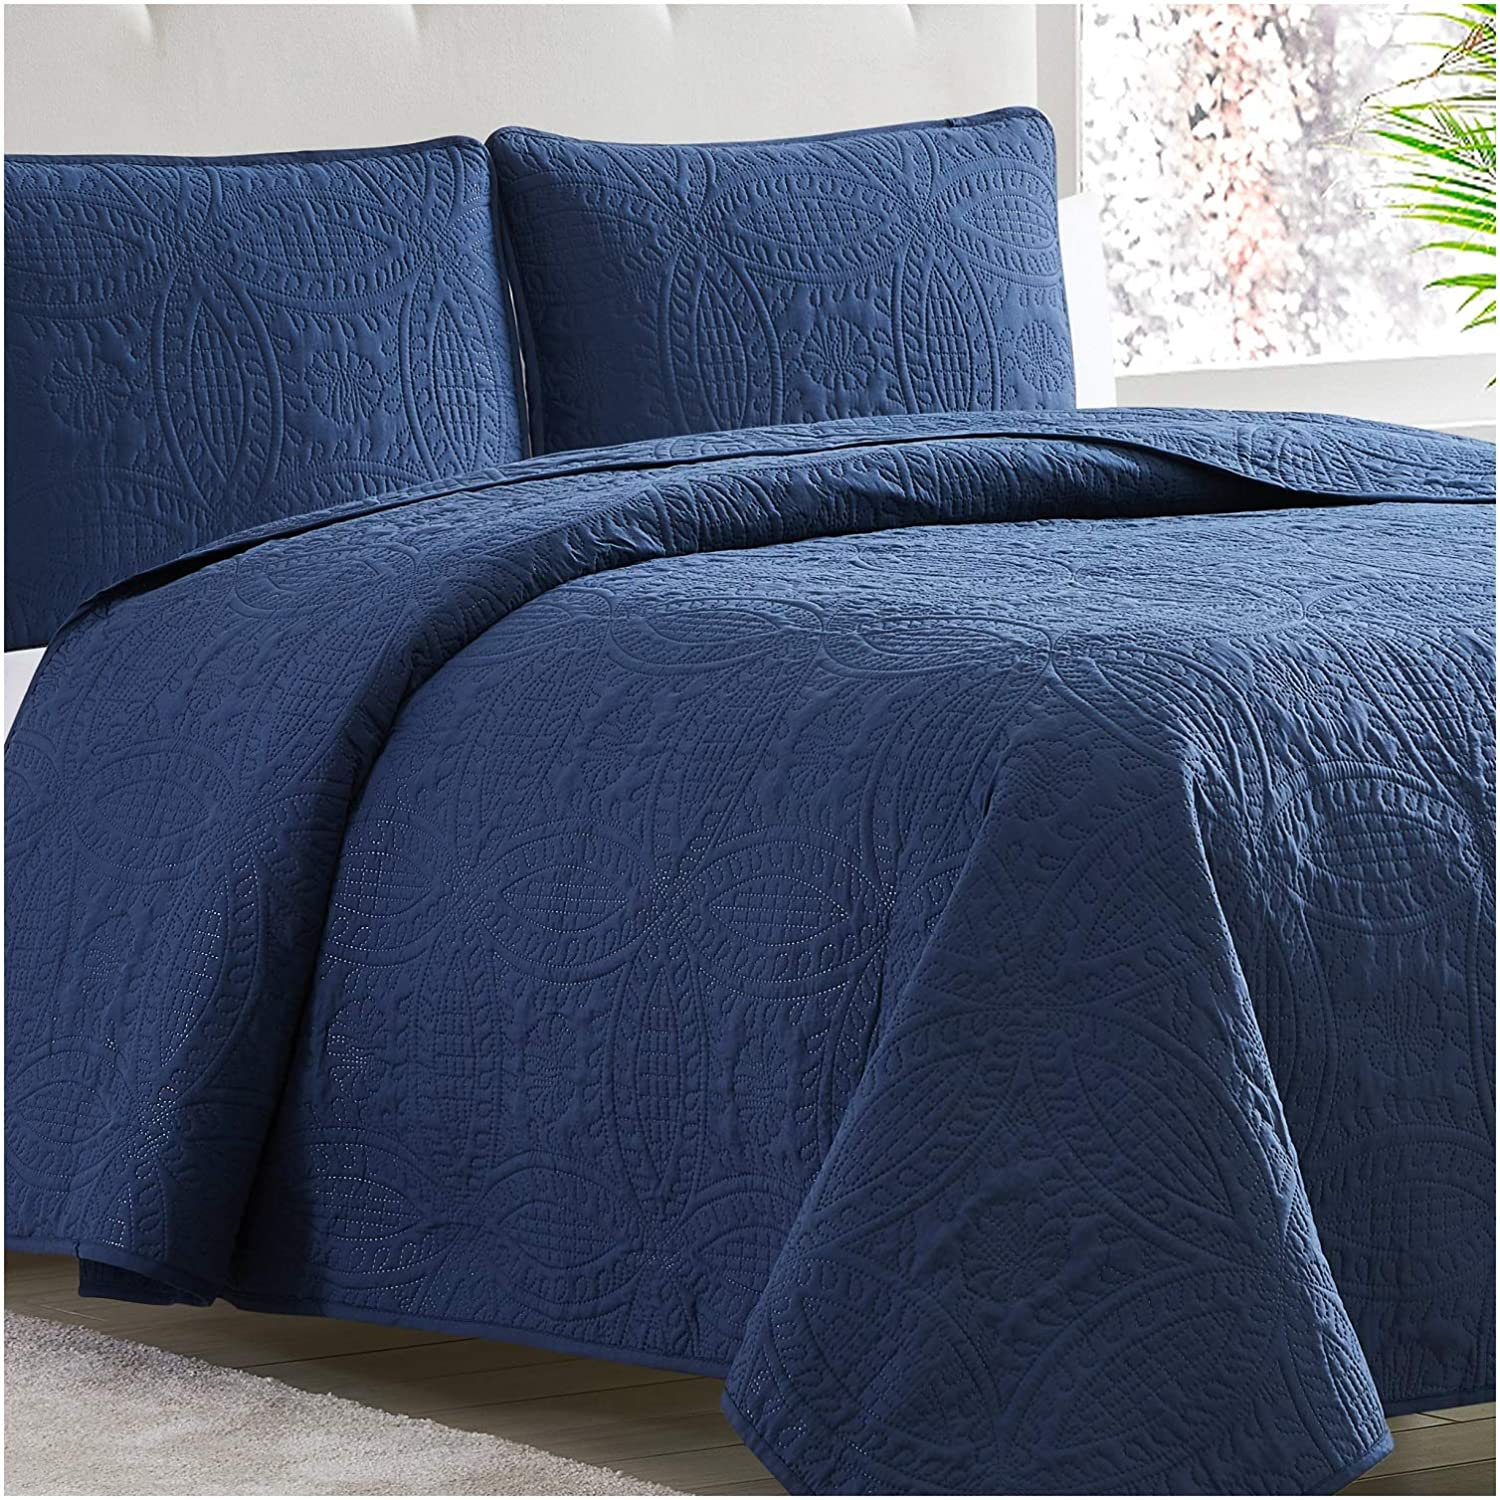 Mellanni Bedspread Coverlet Set Navy - Comforter Bedding Cover - Oversized 3-Piece Quilt Set (King/Cal King, Navy)